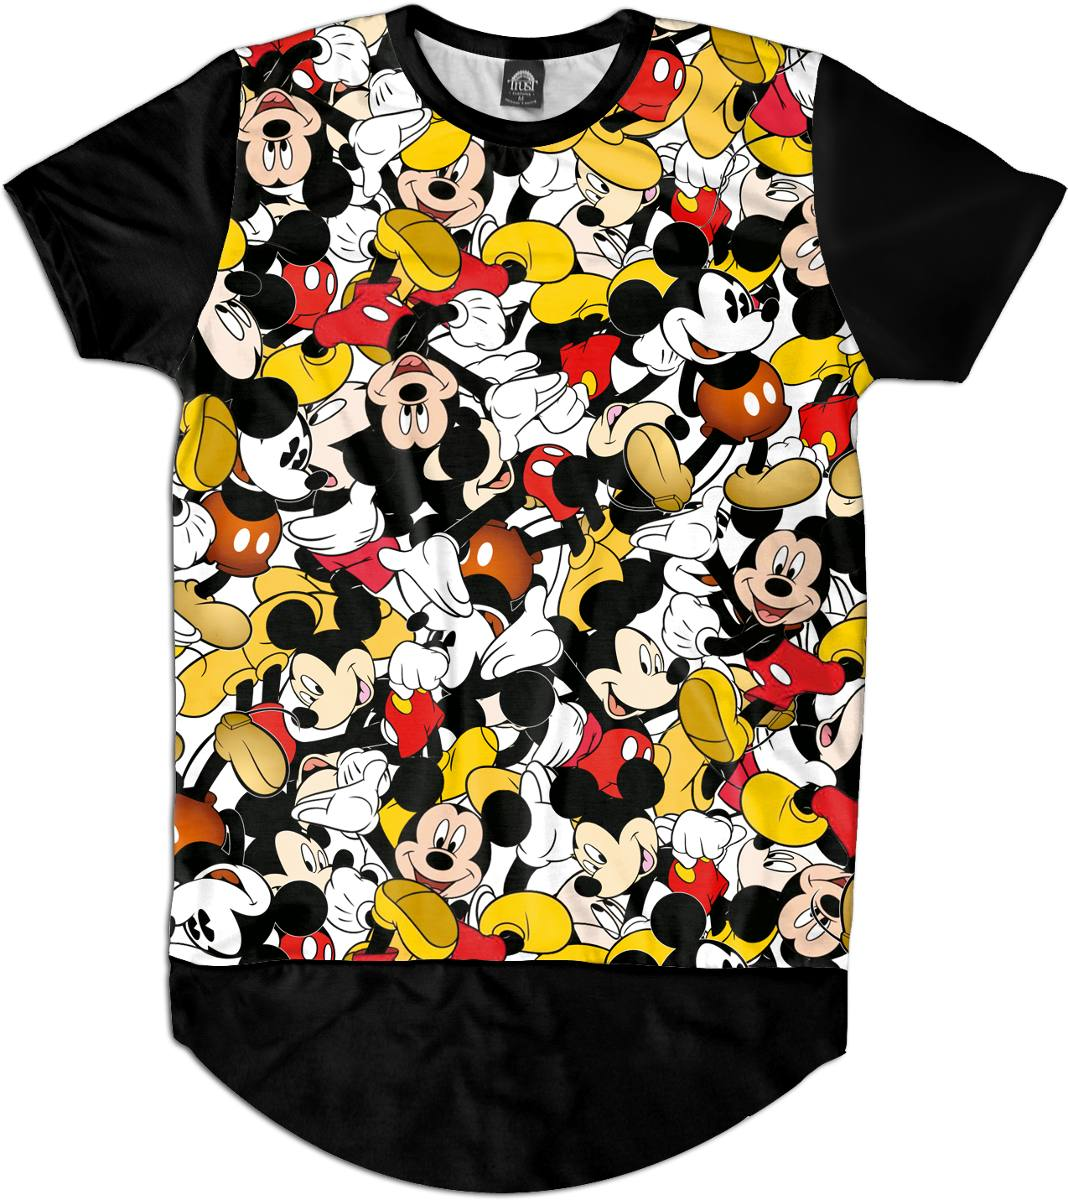 Camiseta camisetao masculino oversized mickey disney for Oversized disney t shirts